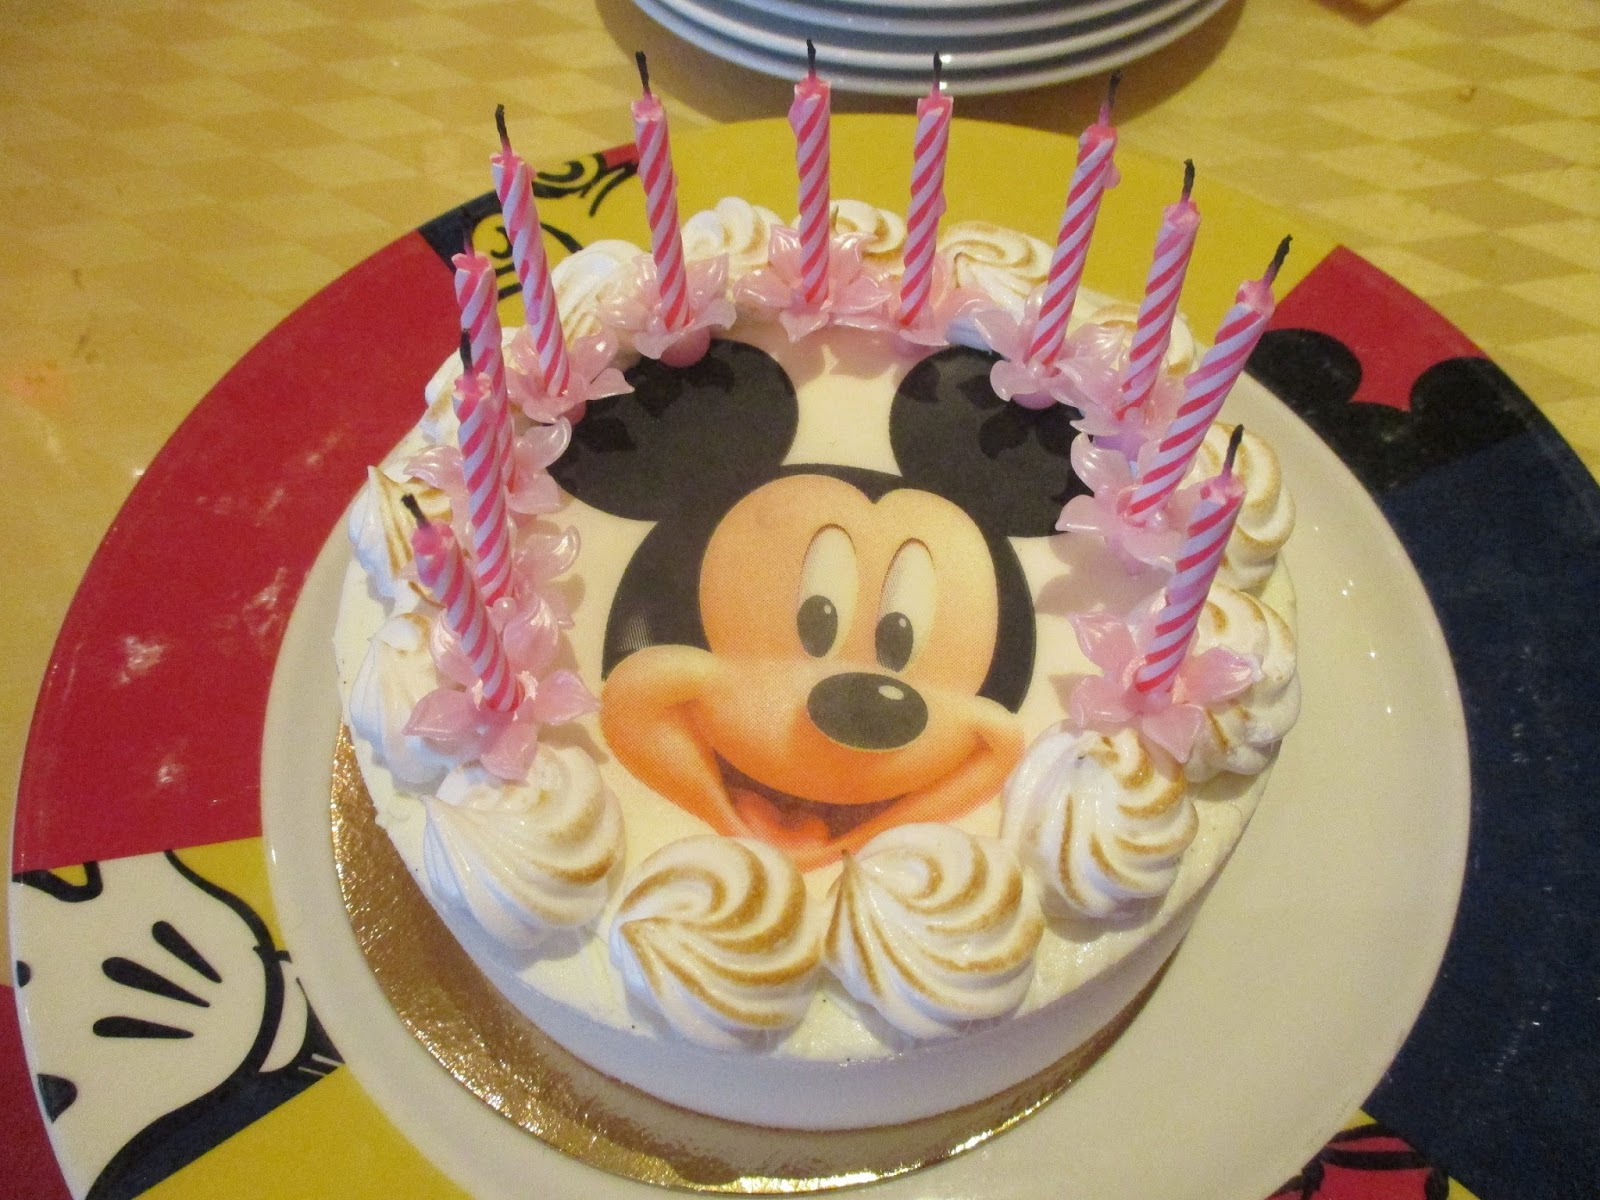 It Will Be Out First Visit So Stay Tuned For The Review Of Our On Blog Including That Disneyland Paris 25th Anniversary Special Birthday Cake